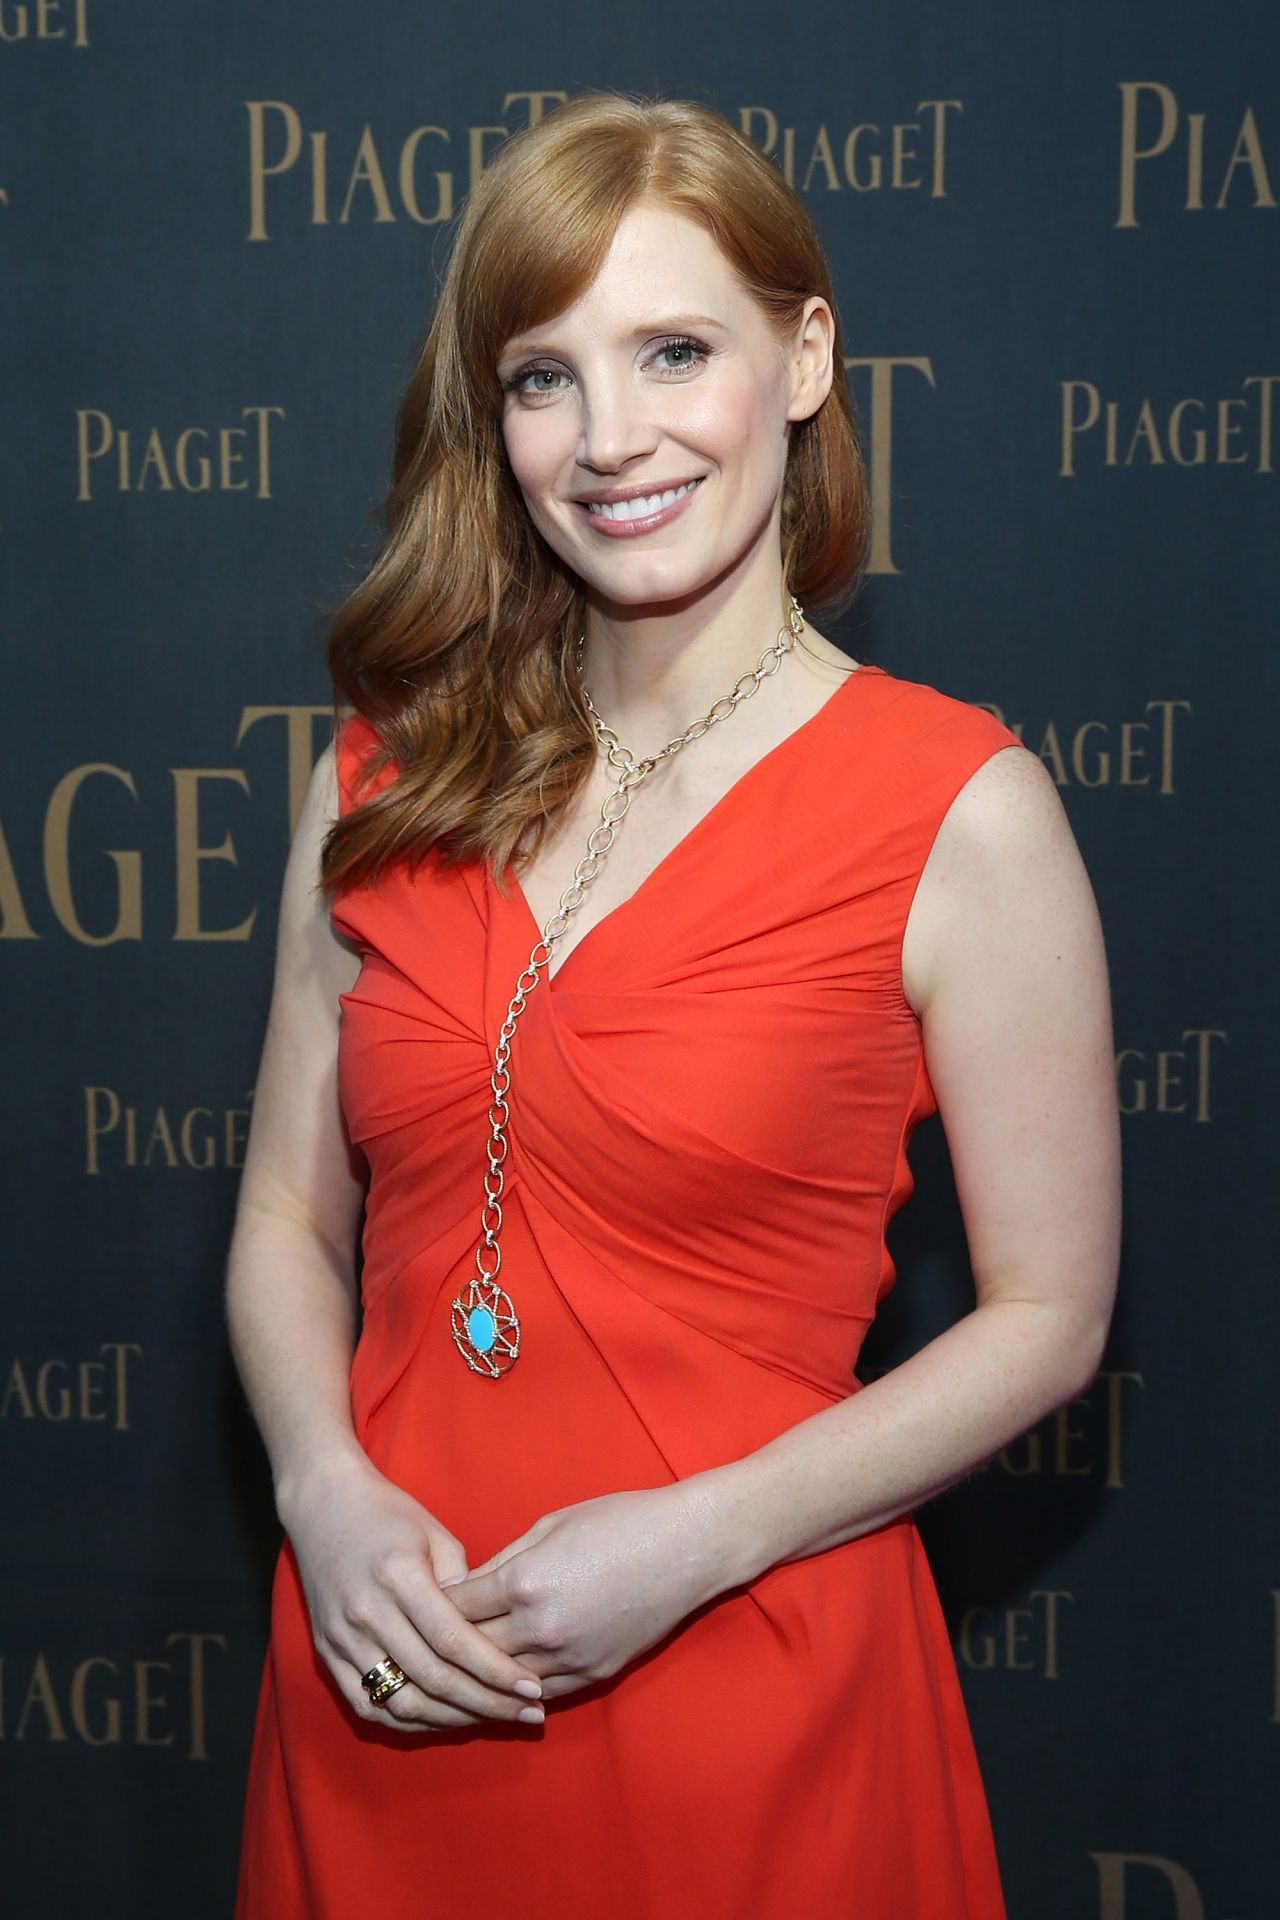 jessica-chastain-extremely-piaget-launch-event-in-beverly-hills-october-2014